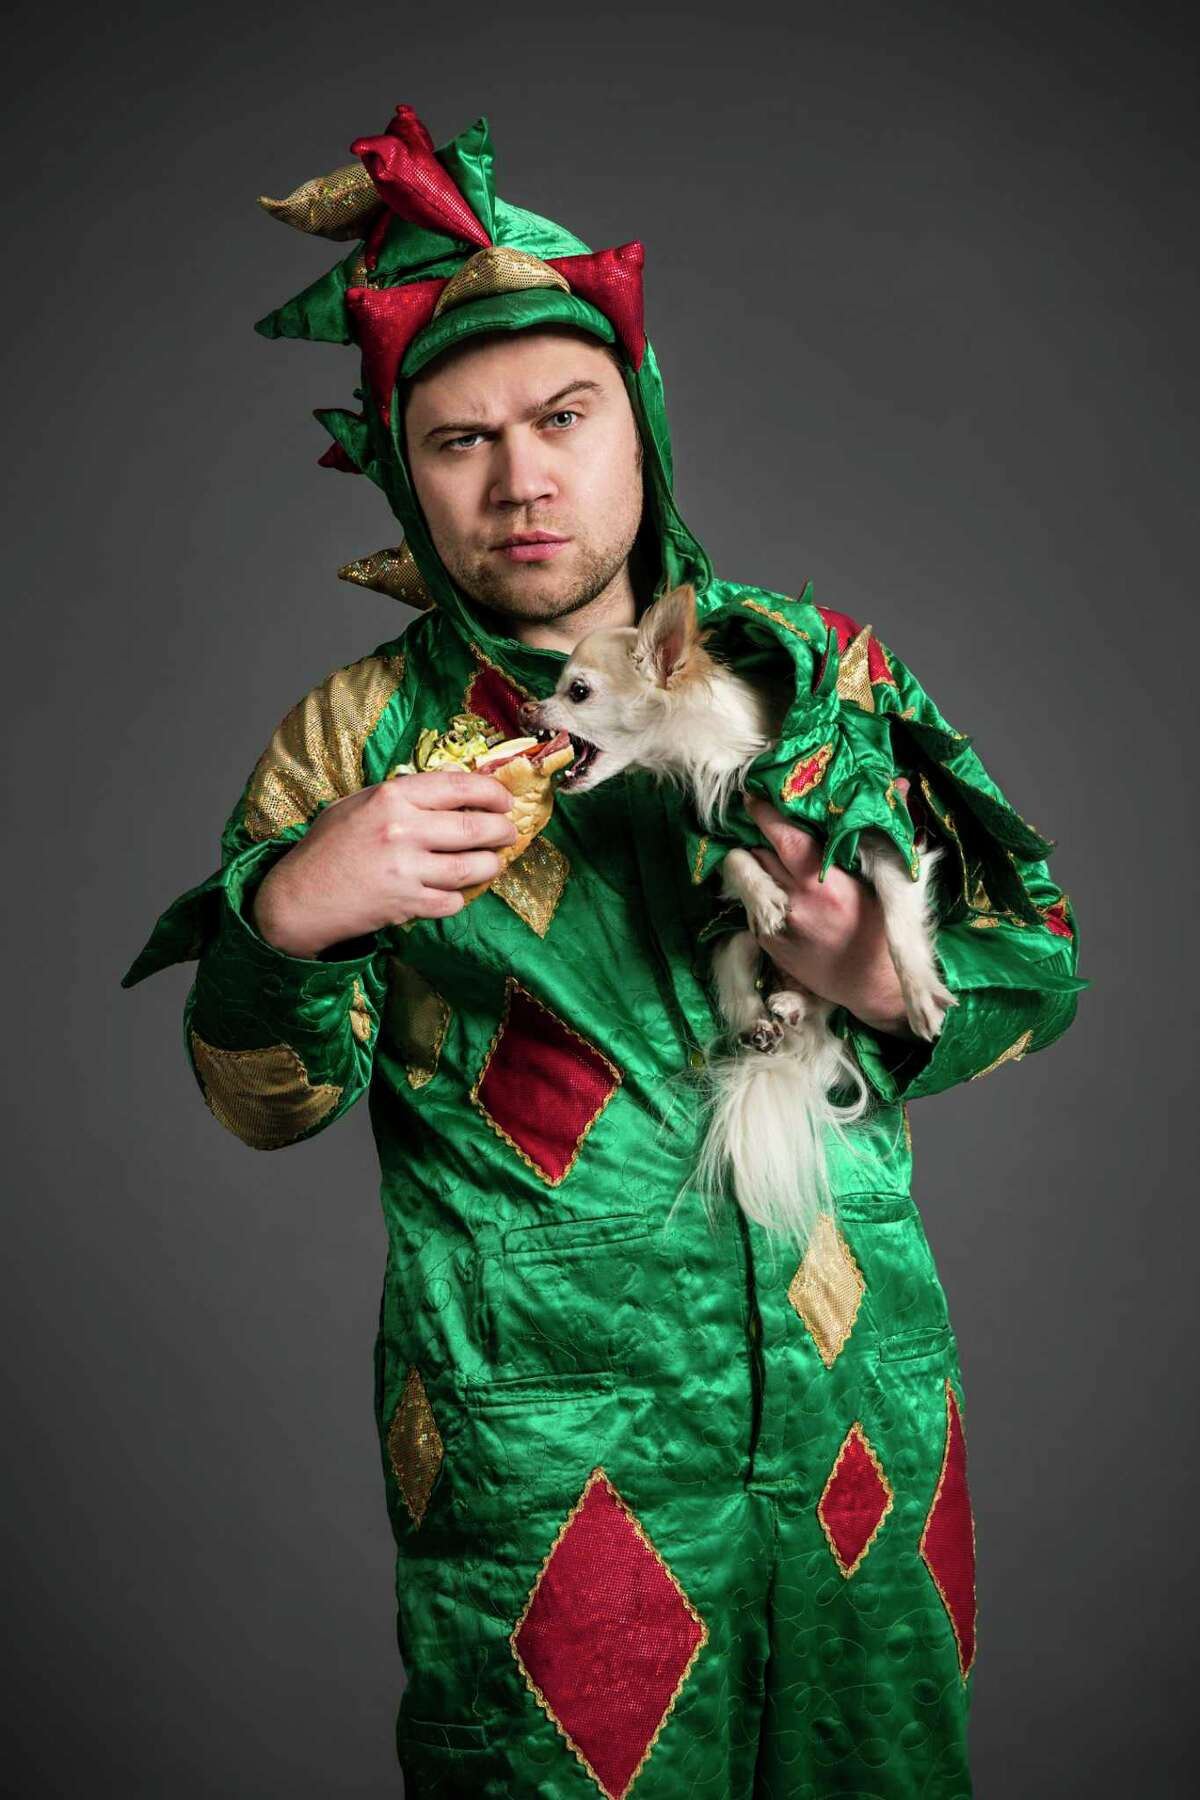 Piff the Magic Dragon will perform on Jan. 18 at 5 and 8 p.m. at the Ridgefield Playhouse, 80 East Ridge Road, Ridgefield. Tickets are $40-$65. For more information, visit ridgefieldplayhouse.org.